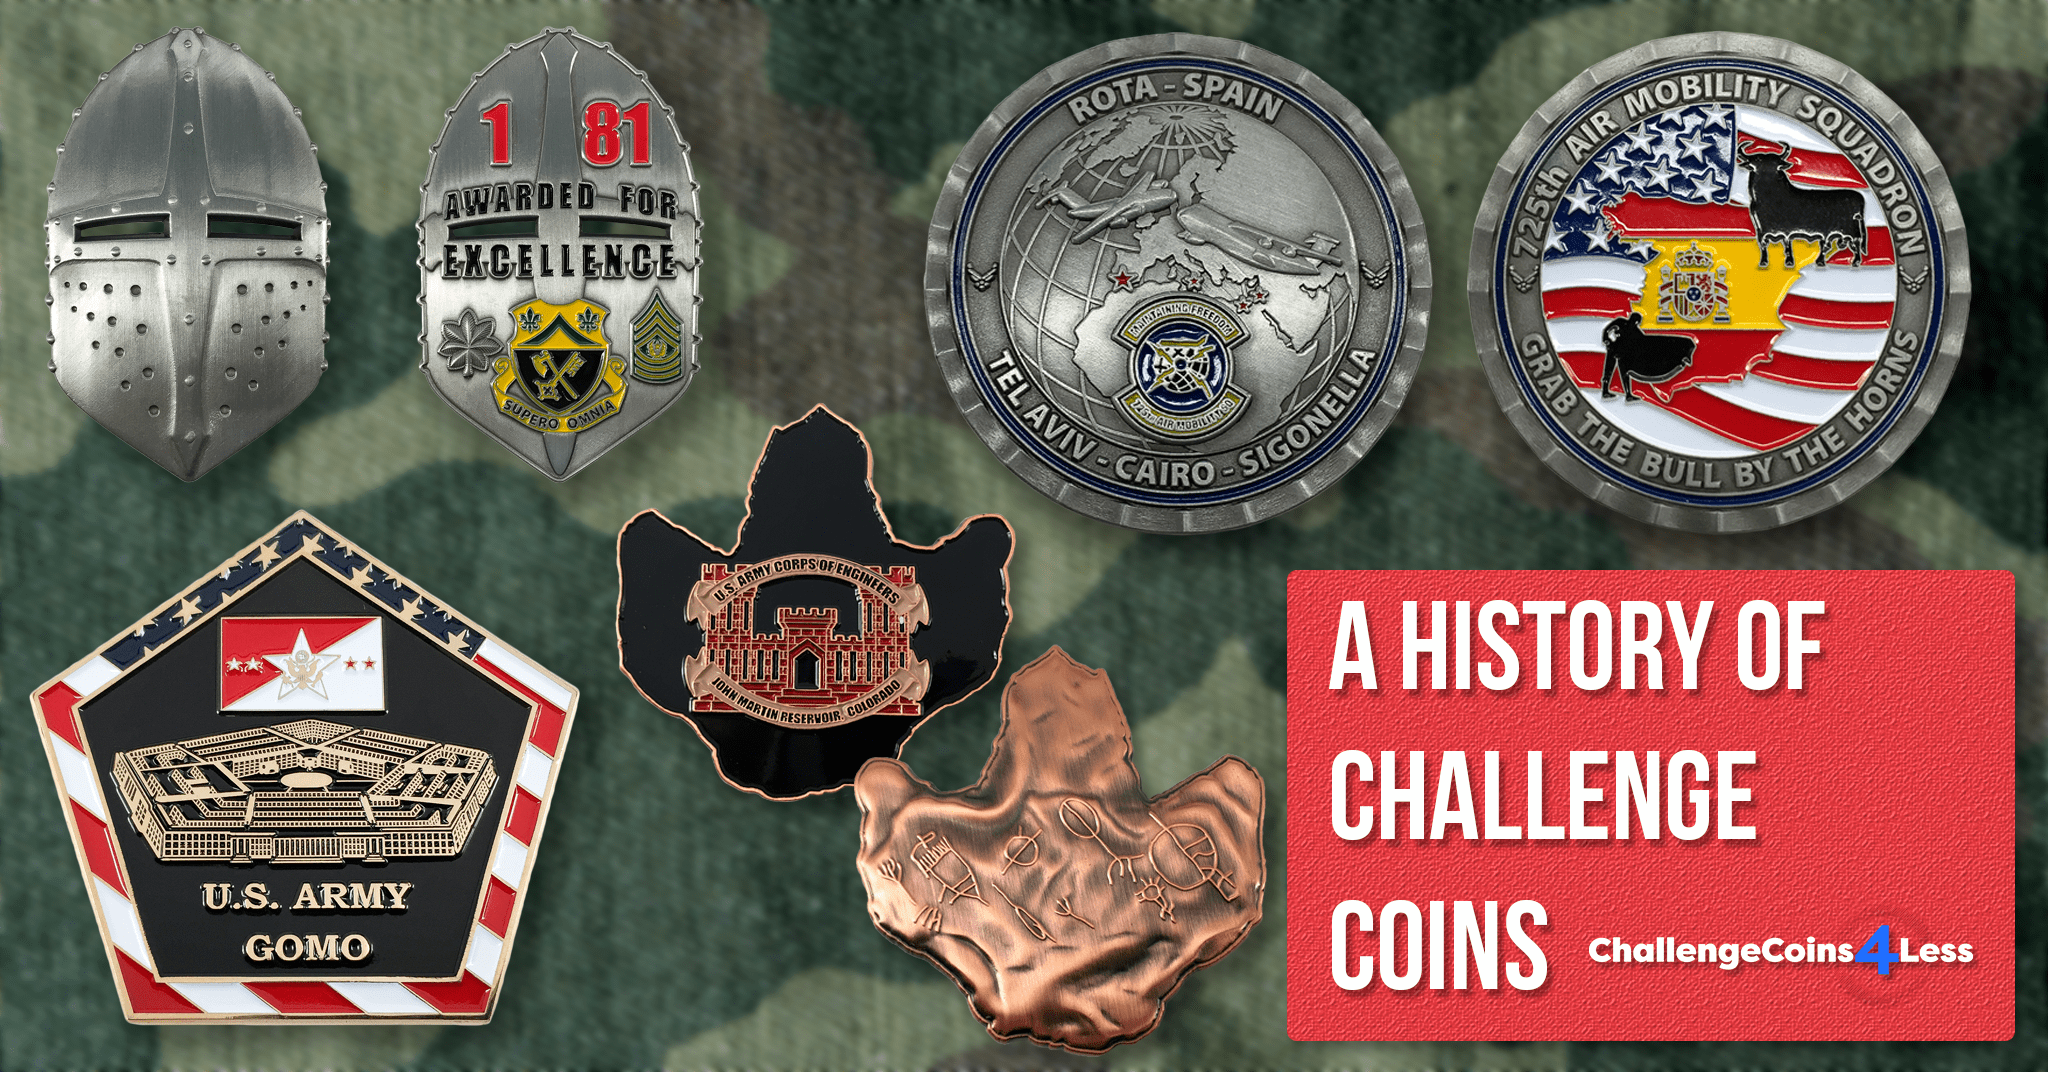 Ancient Romans, Spies, and WWI Aces: A History of Challenge Coins!